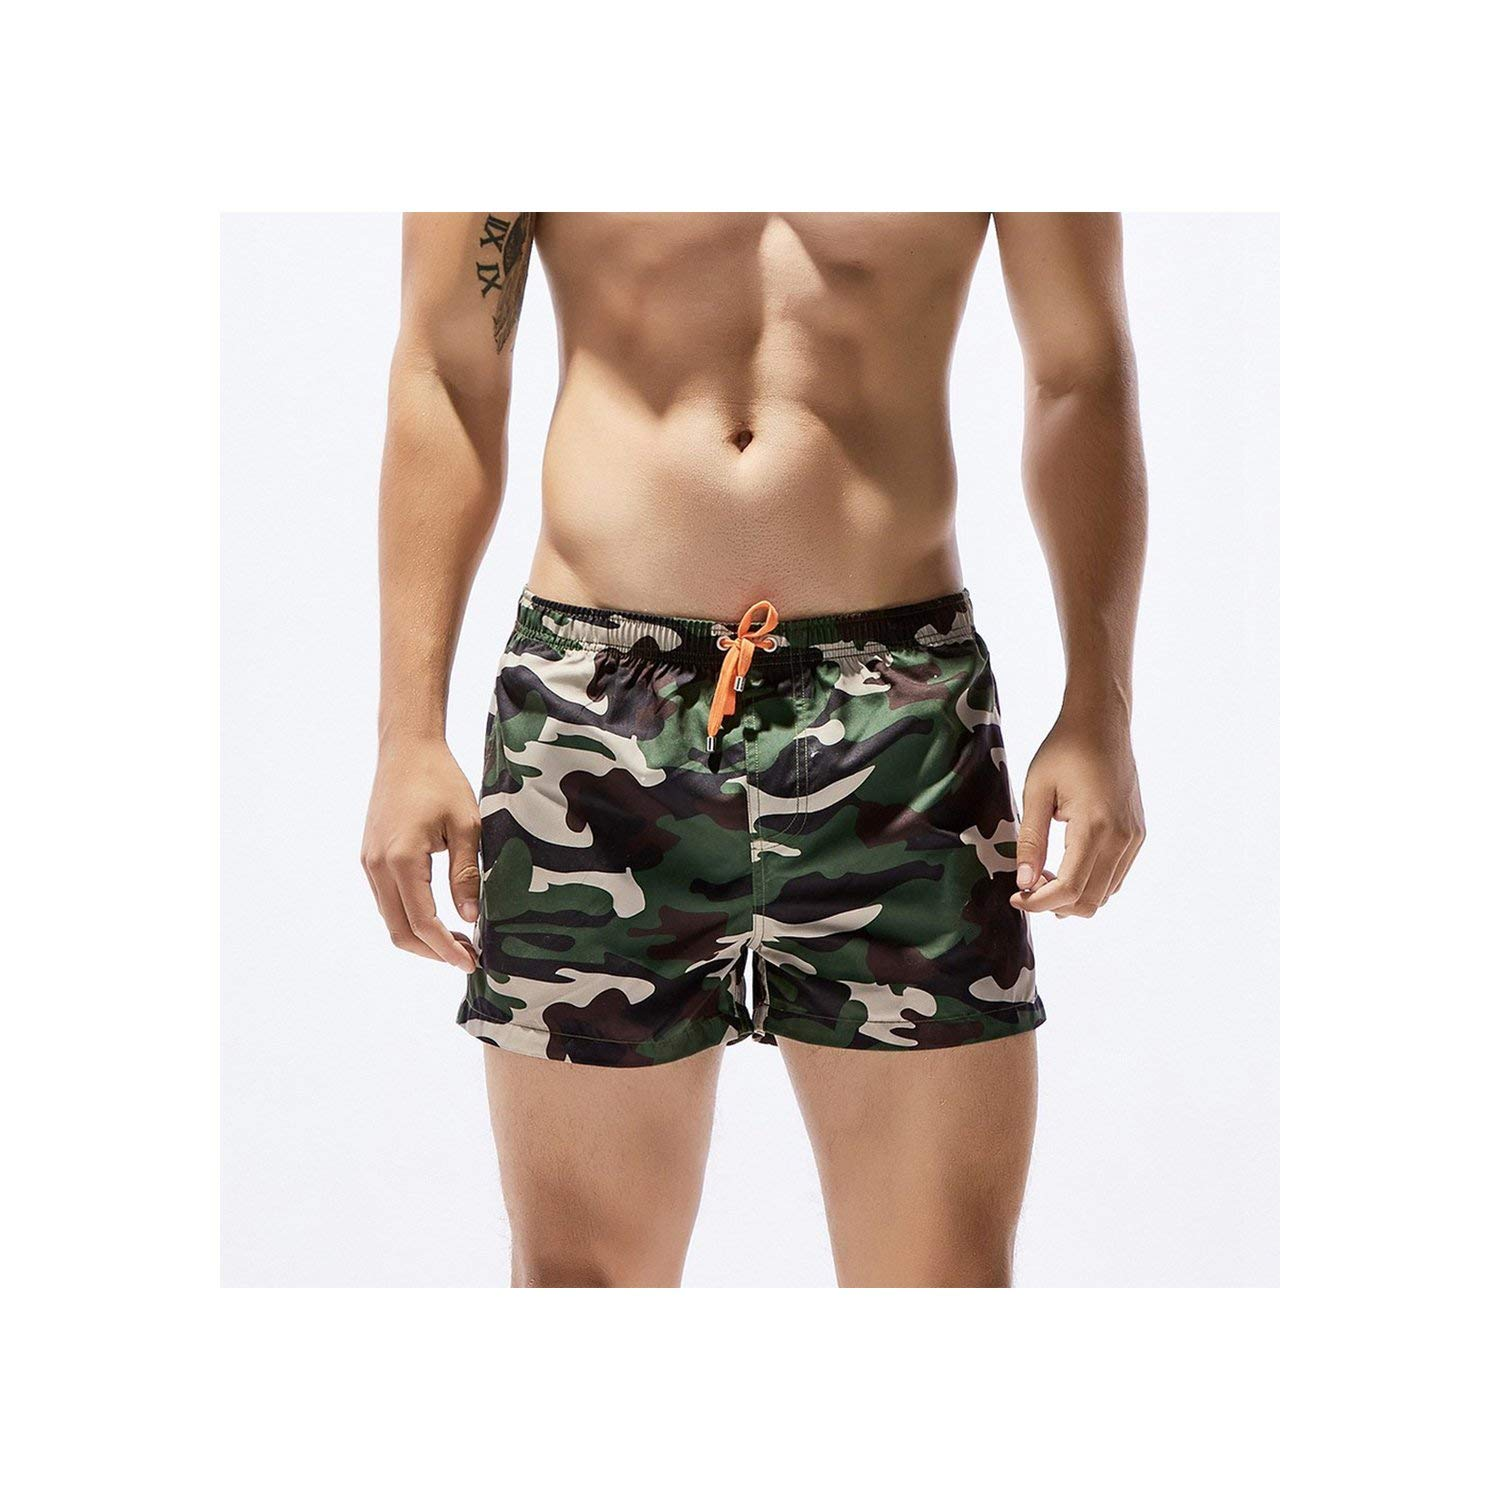 Ivyi Large Size Men Breathable Swimming Trunks Slim Camouflage Printed Underwear Shorts Beach Shorts